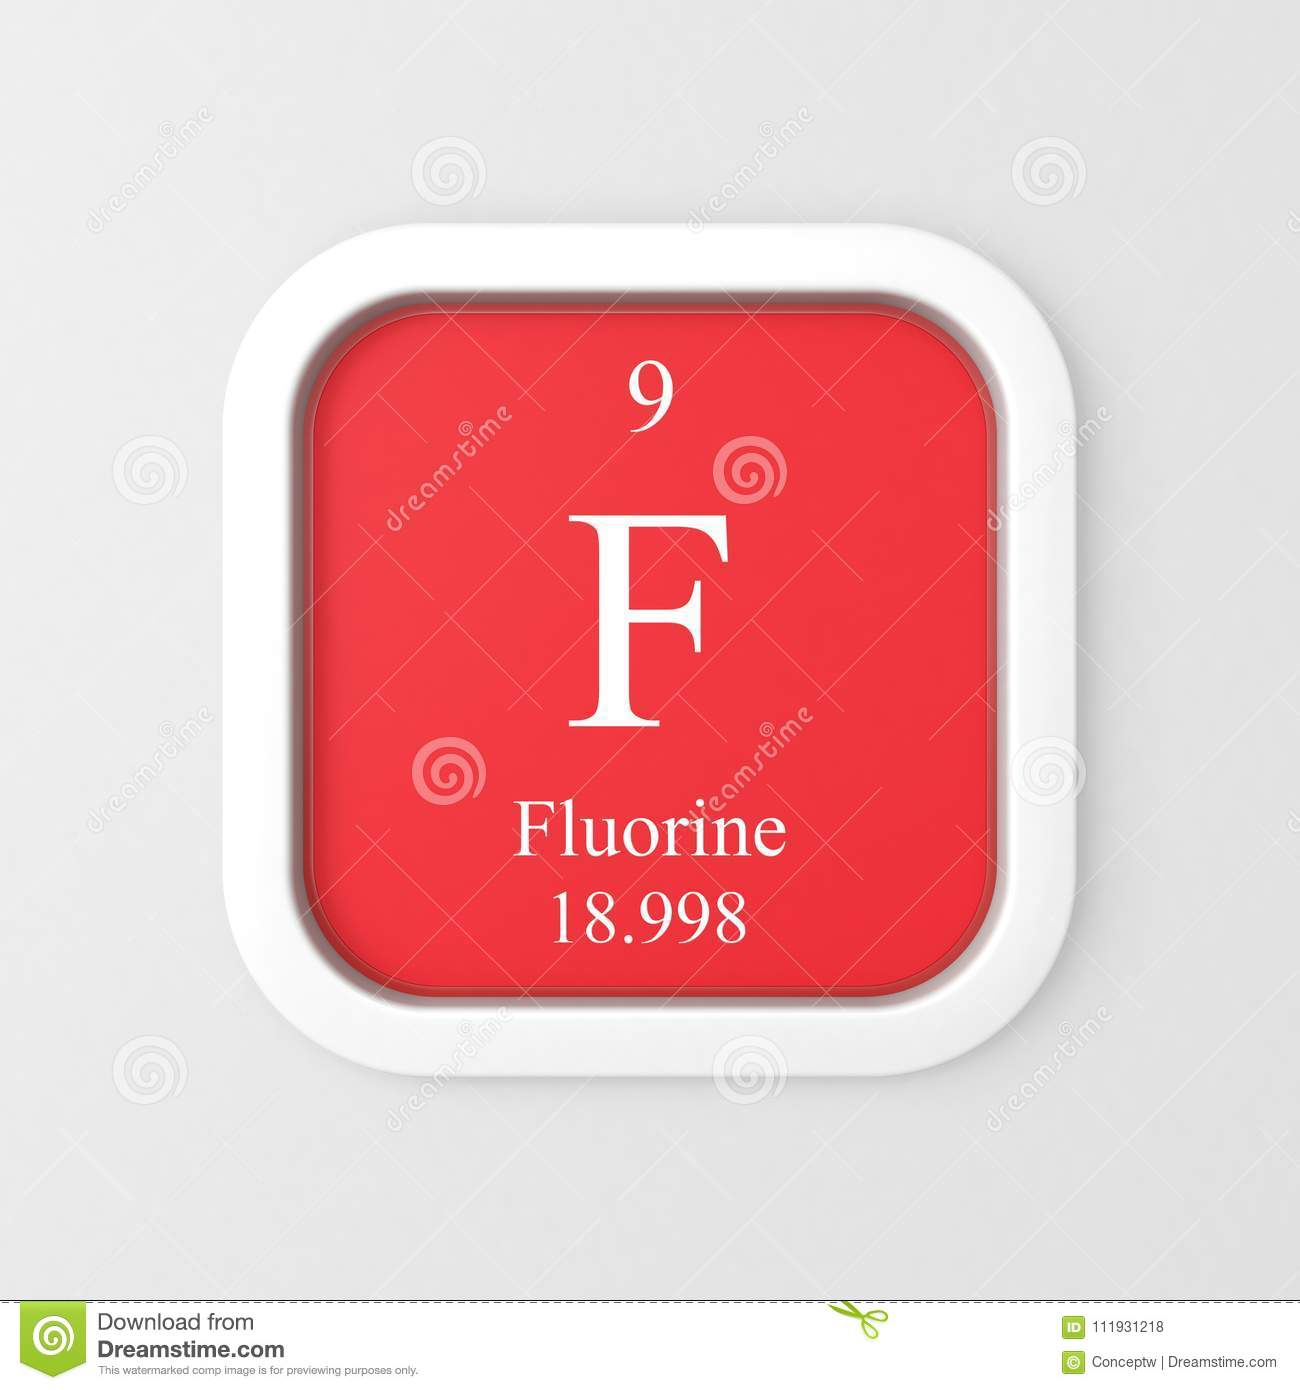 Fluorine Symbol On Red Rounded Square Stock Illustration